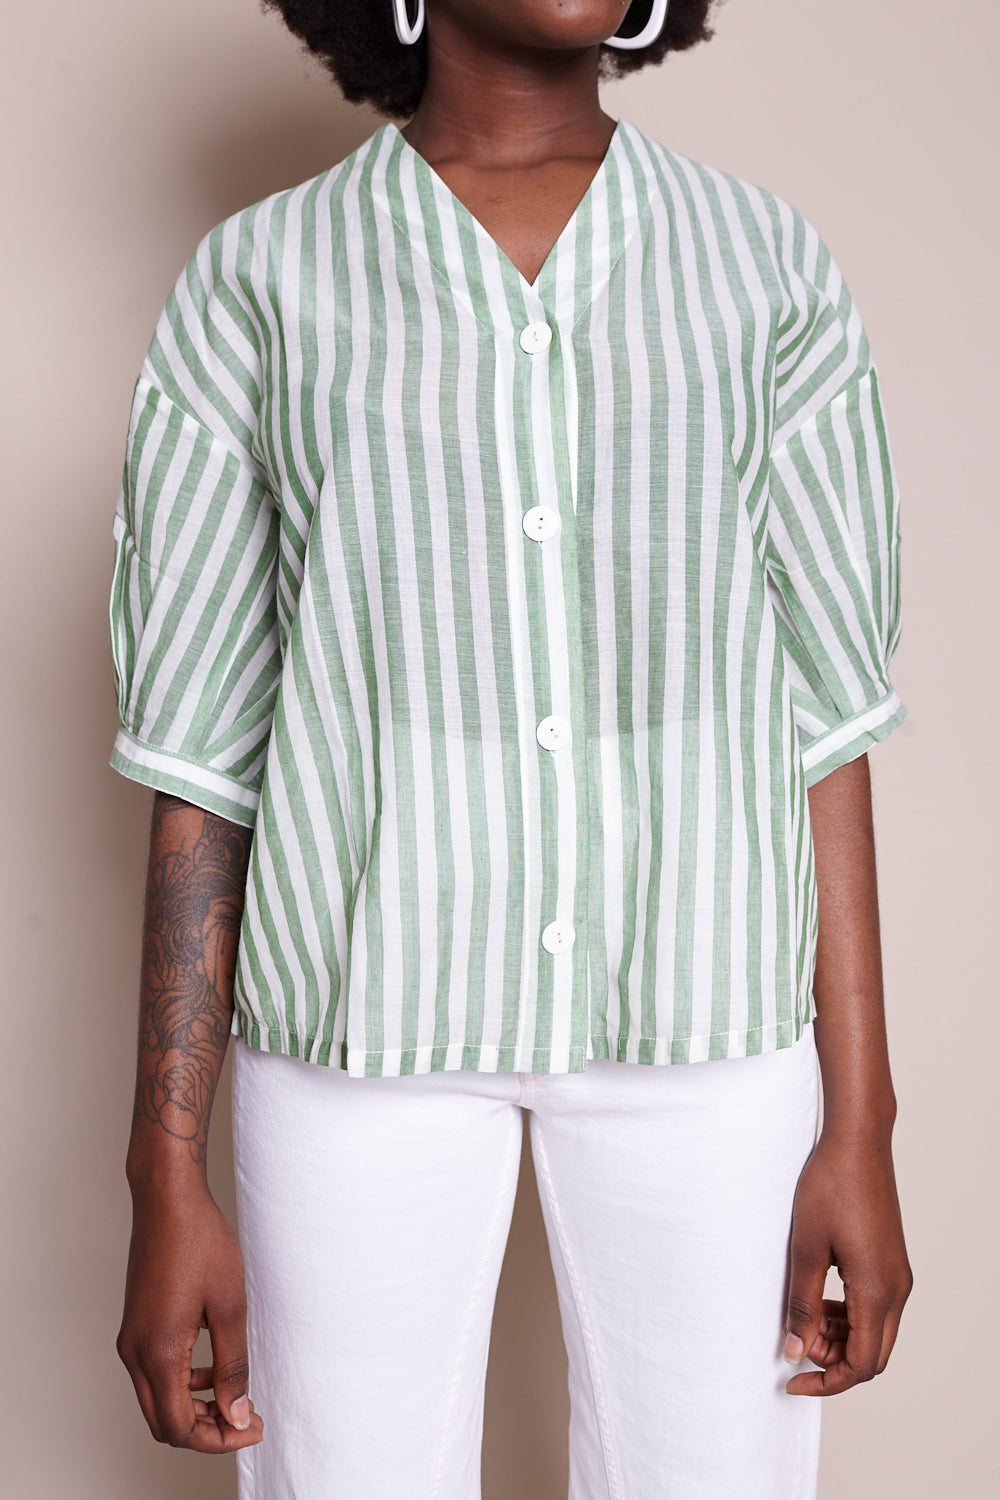 Studio Top in Green Stripe